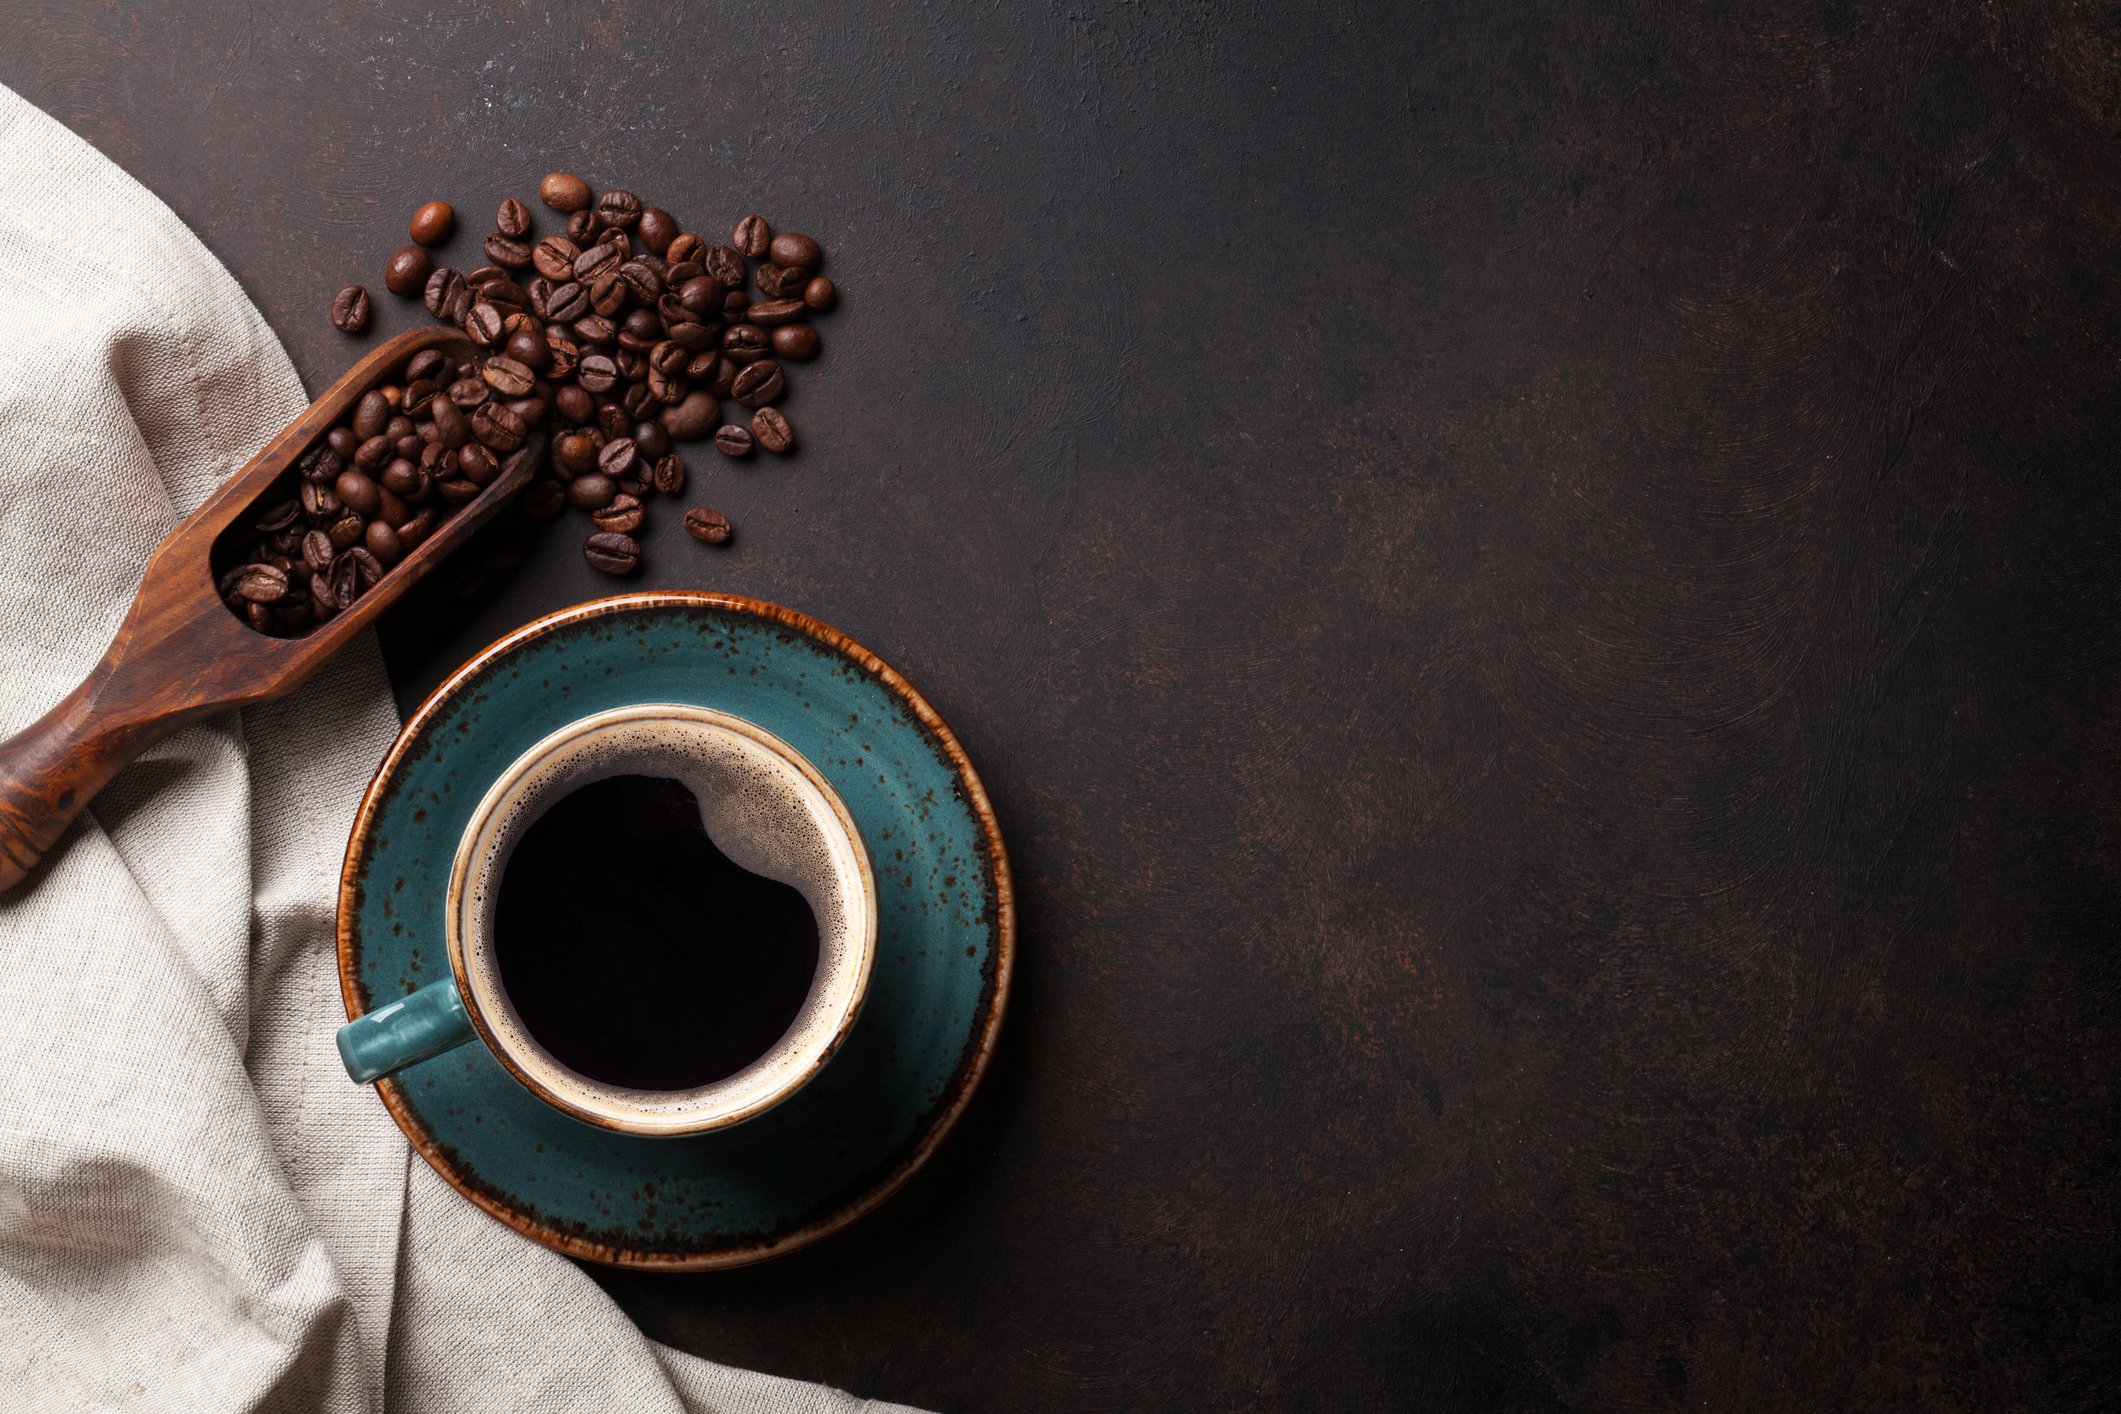 Panama grows some finest coffee in the world